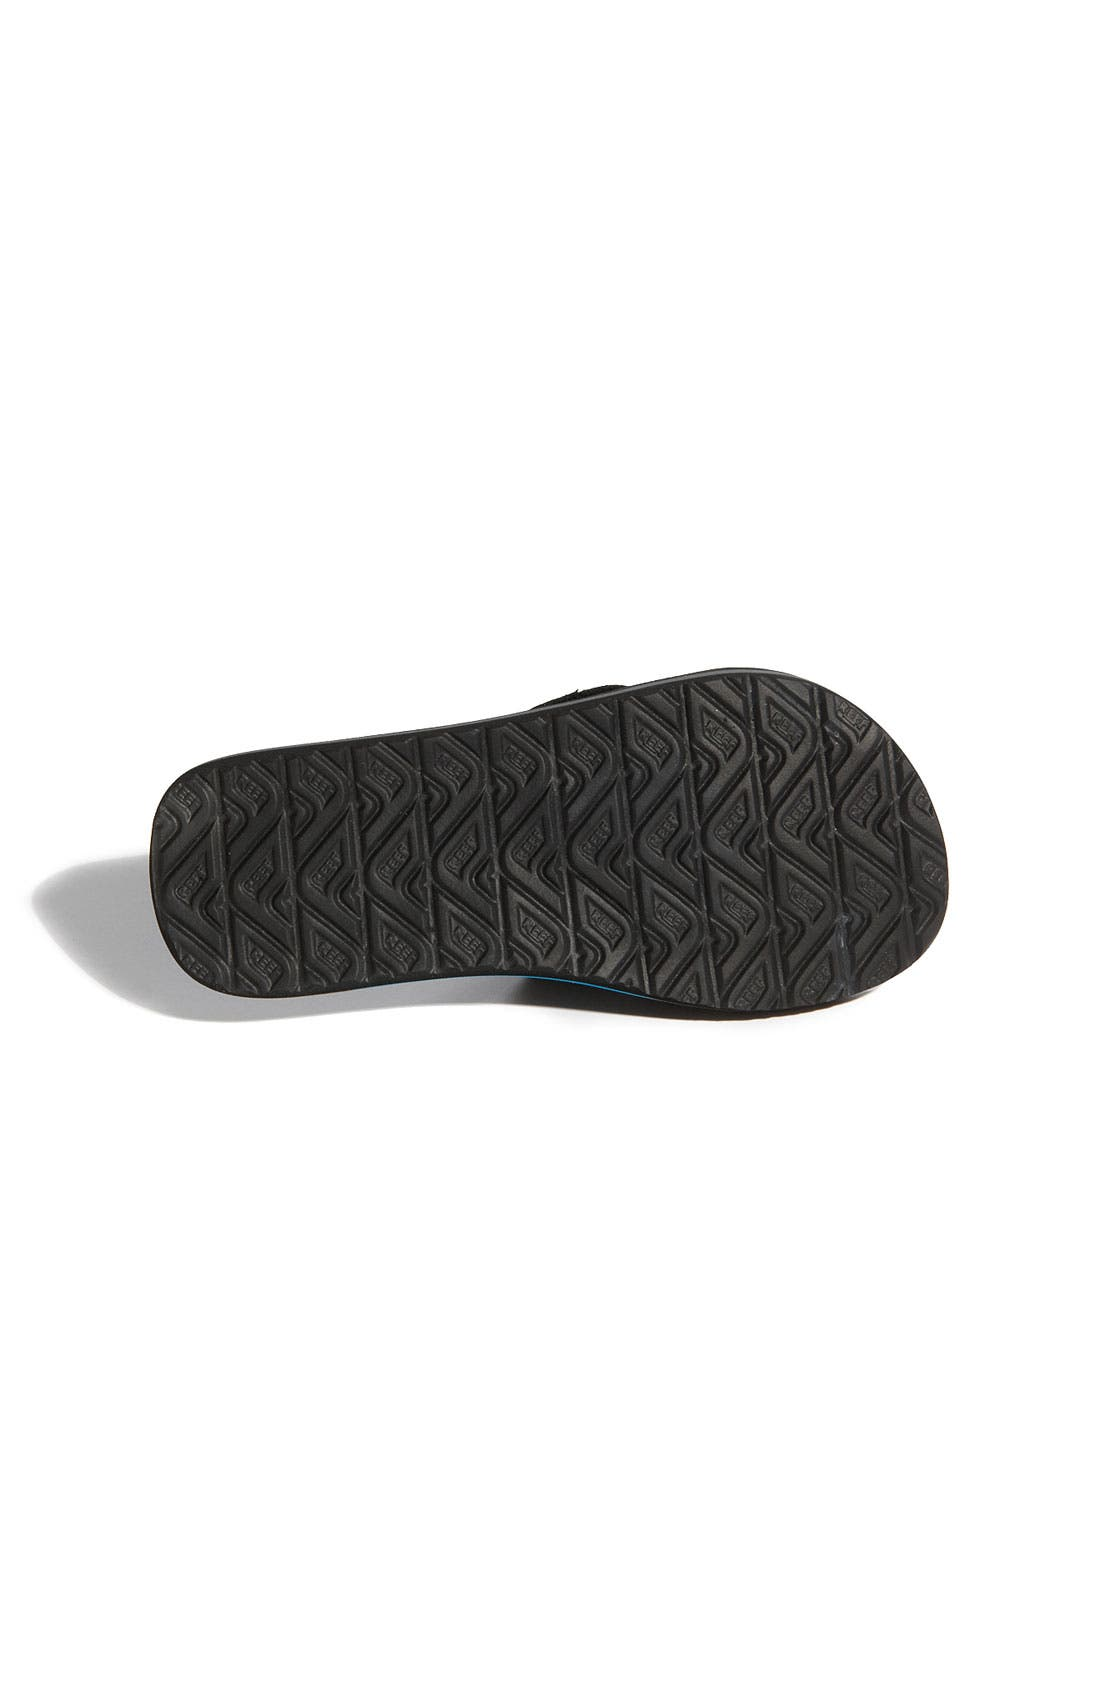 Alternate Image 4  - Reef 'Grom Ahi' Slide Sandal (Walker, Toddler, Little Kid & Big Kid)